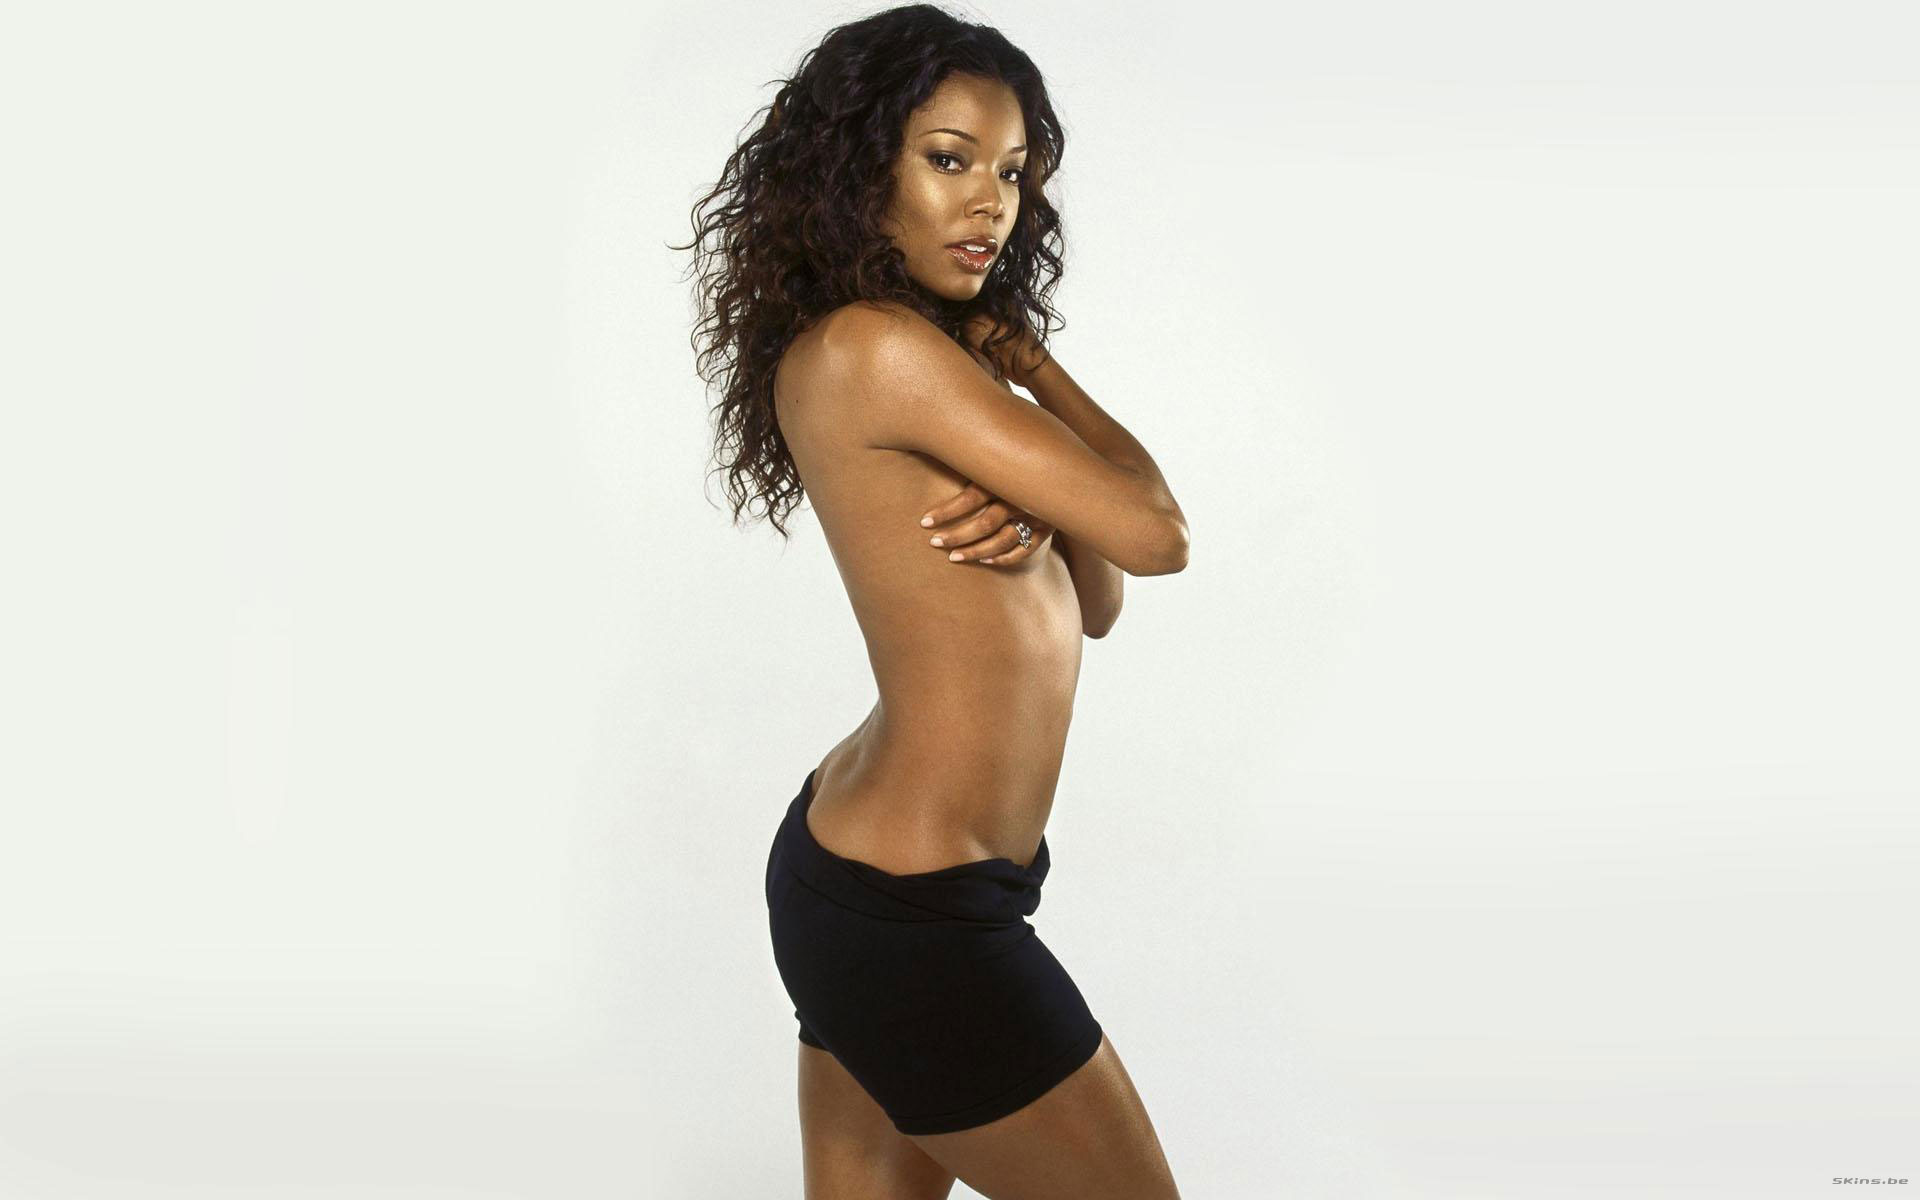 1920x1200 - Gabrielle Union Wallpapers 5